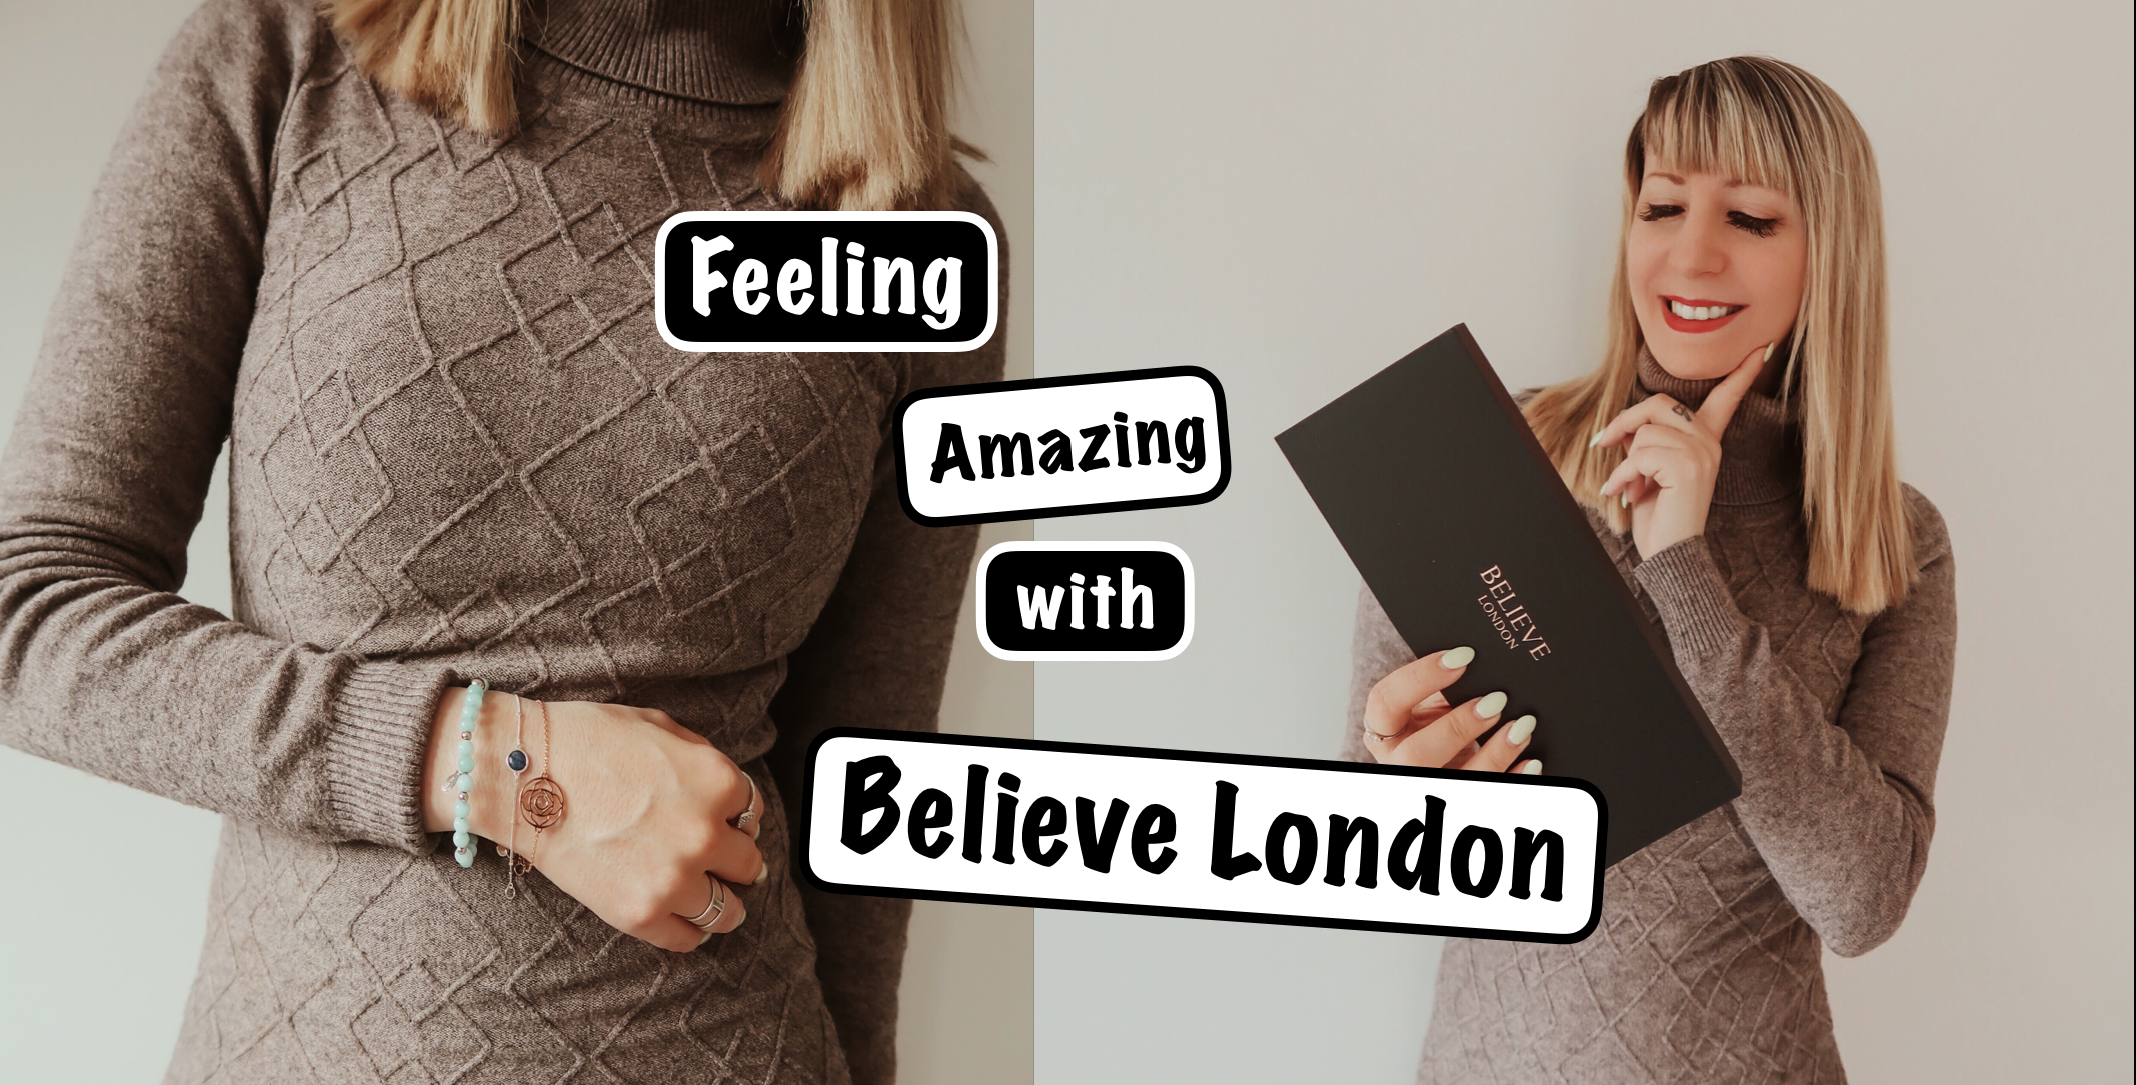 jennaminnie jenna minnie fashion blog Feeling amazing with Believe London